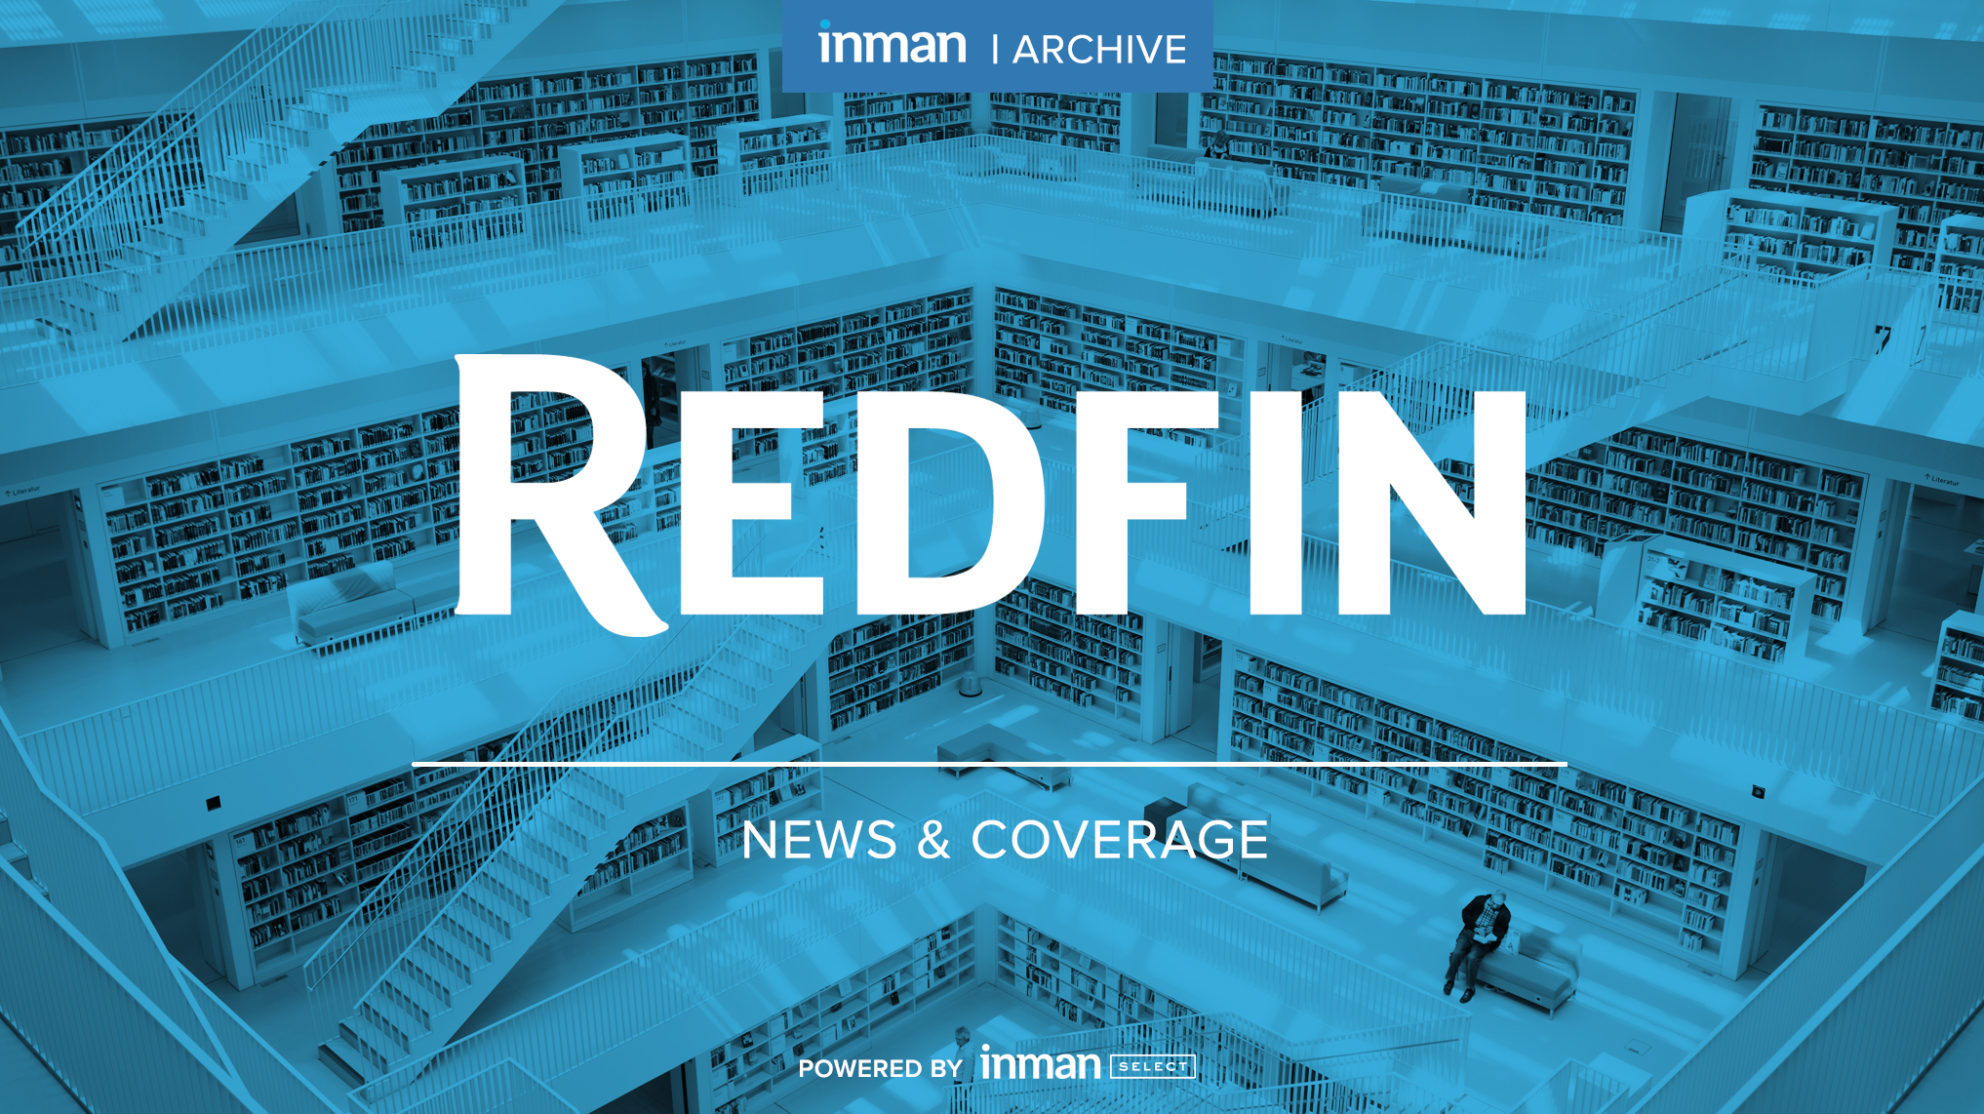 Inman Archive: Redfin